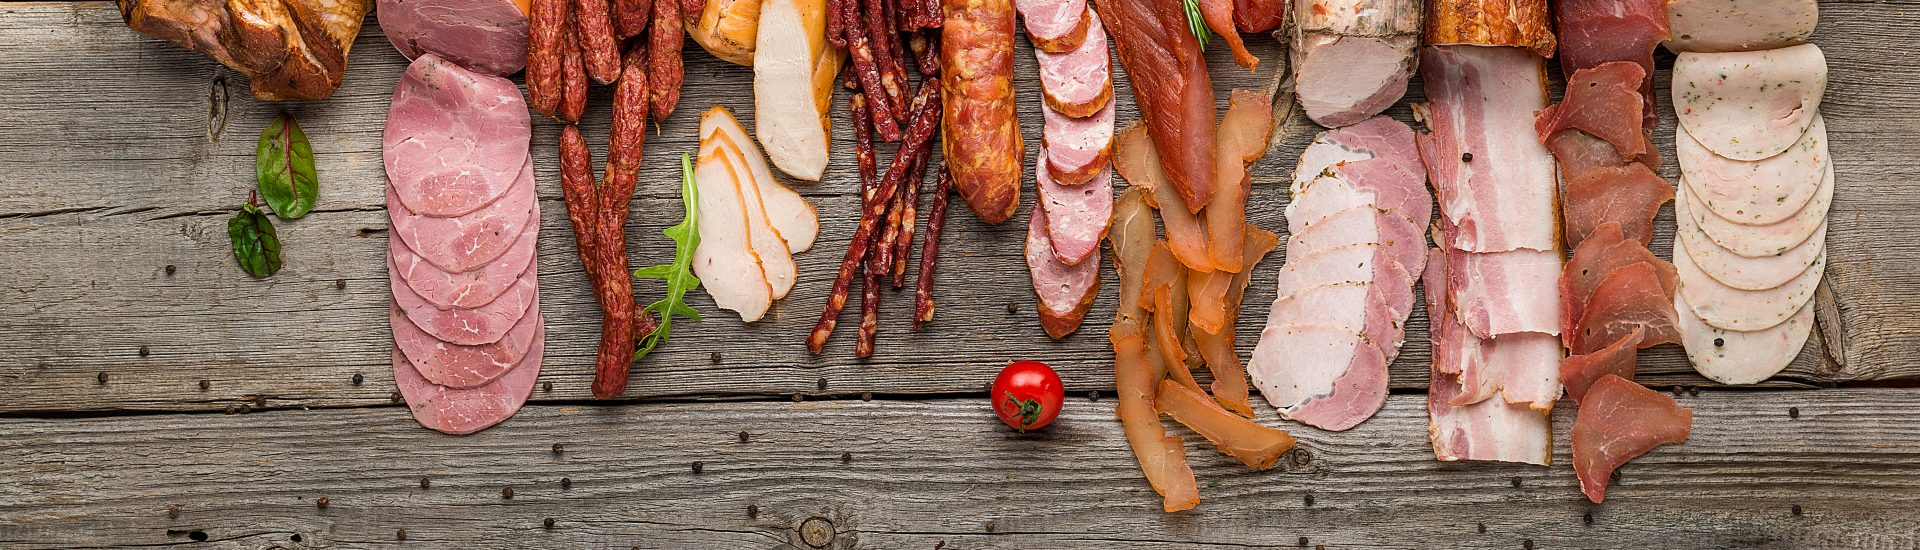 Assortment of cold meats, variety of processed cold meat products. On a wooden background